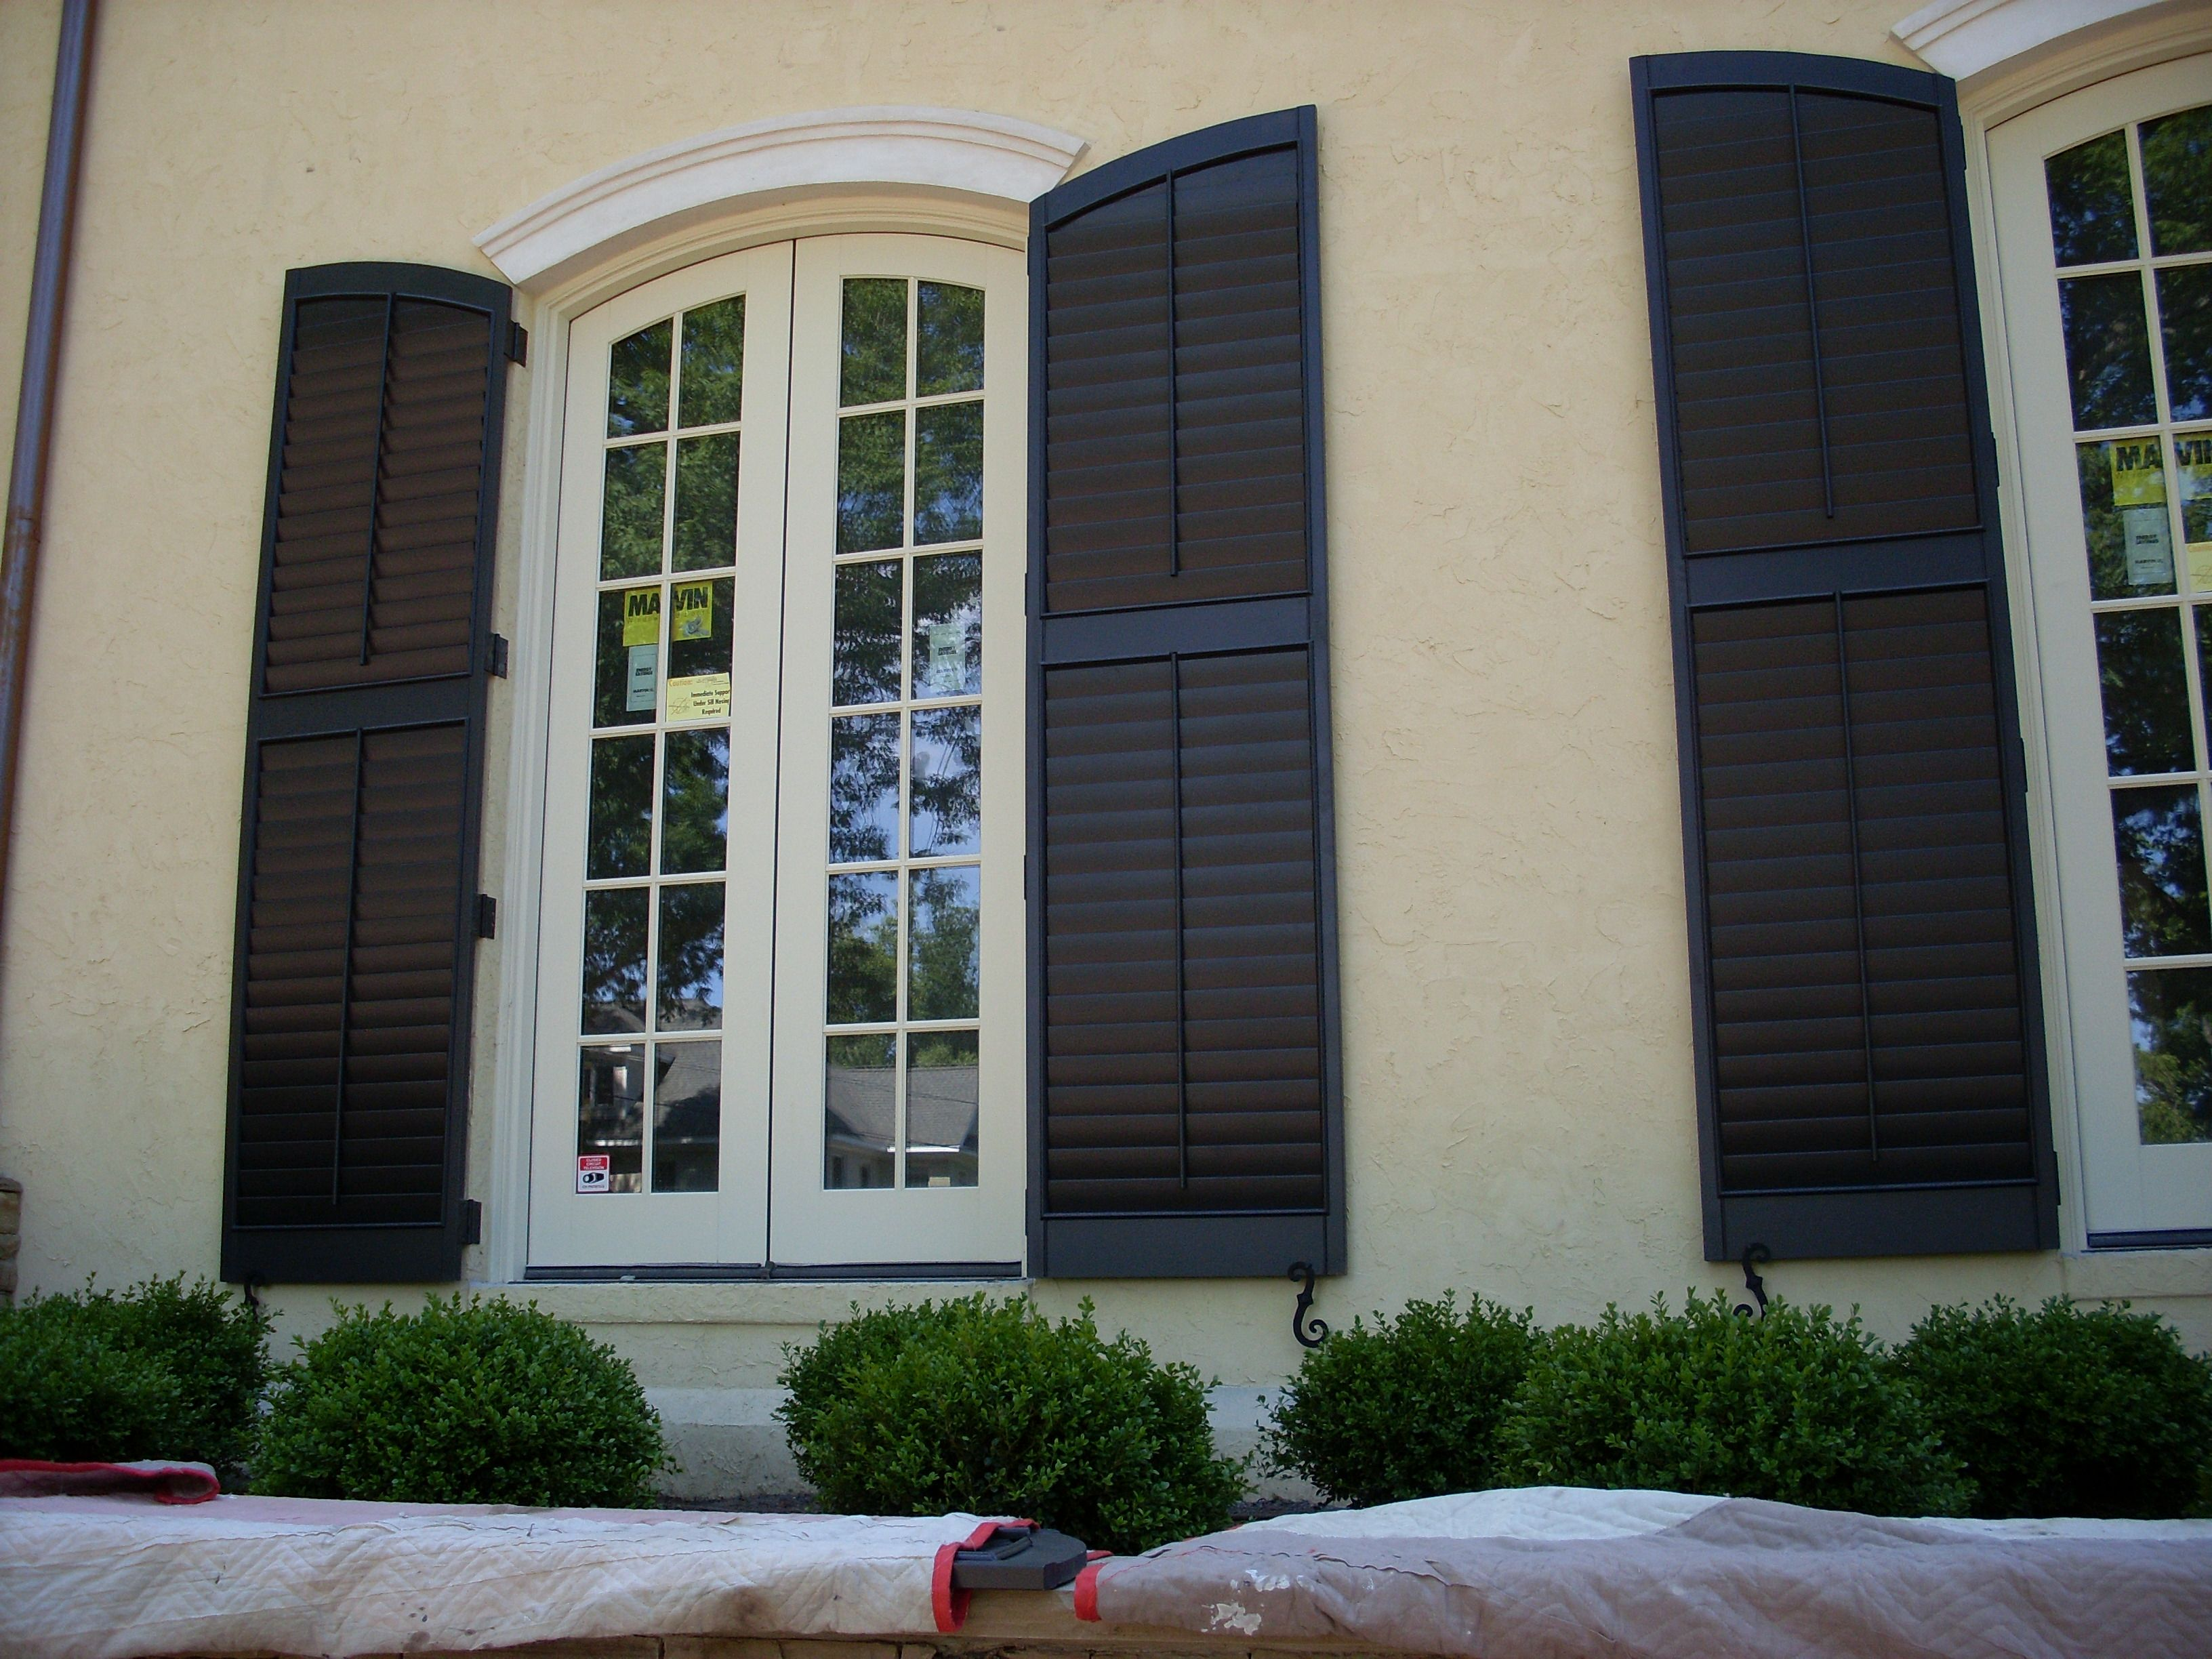 Top Exterior House Shutters Ideas and Guide to Choose the Best ... on window blinds ideas, exterior shutter designs, exterior shutter colors, exterior wood shutters, exterior shtters, exterior shutter alternatives, exterior window shutters, outside shutter ideas, exterior security shutters, wood shutters ideas, shutter color ideas, exterior shutter styles, exterior house paint, unique shutter ideas, exterior window ideas, exterior home shutters, indoor window shutters ideas, exterior colors brick, exterior shutters product, exterior storm shutters,